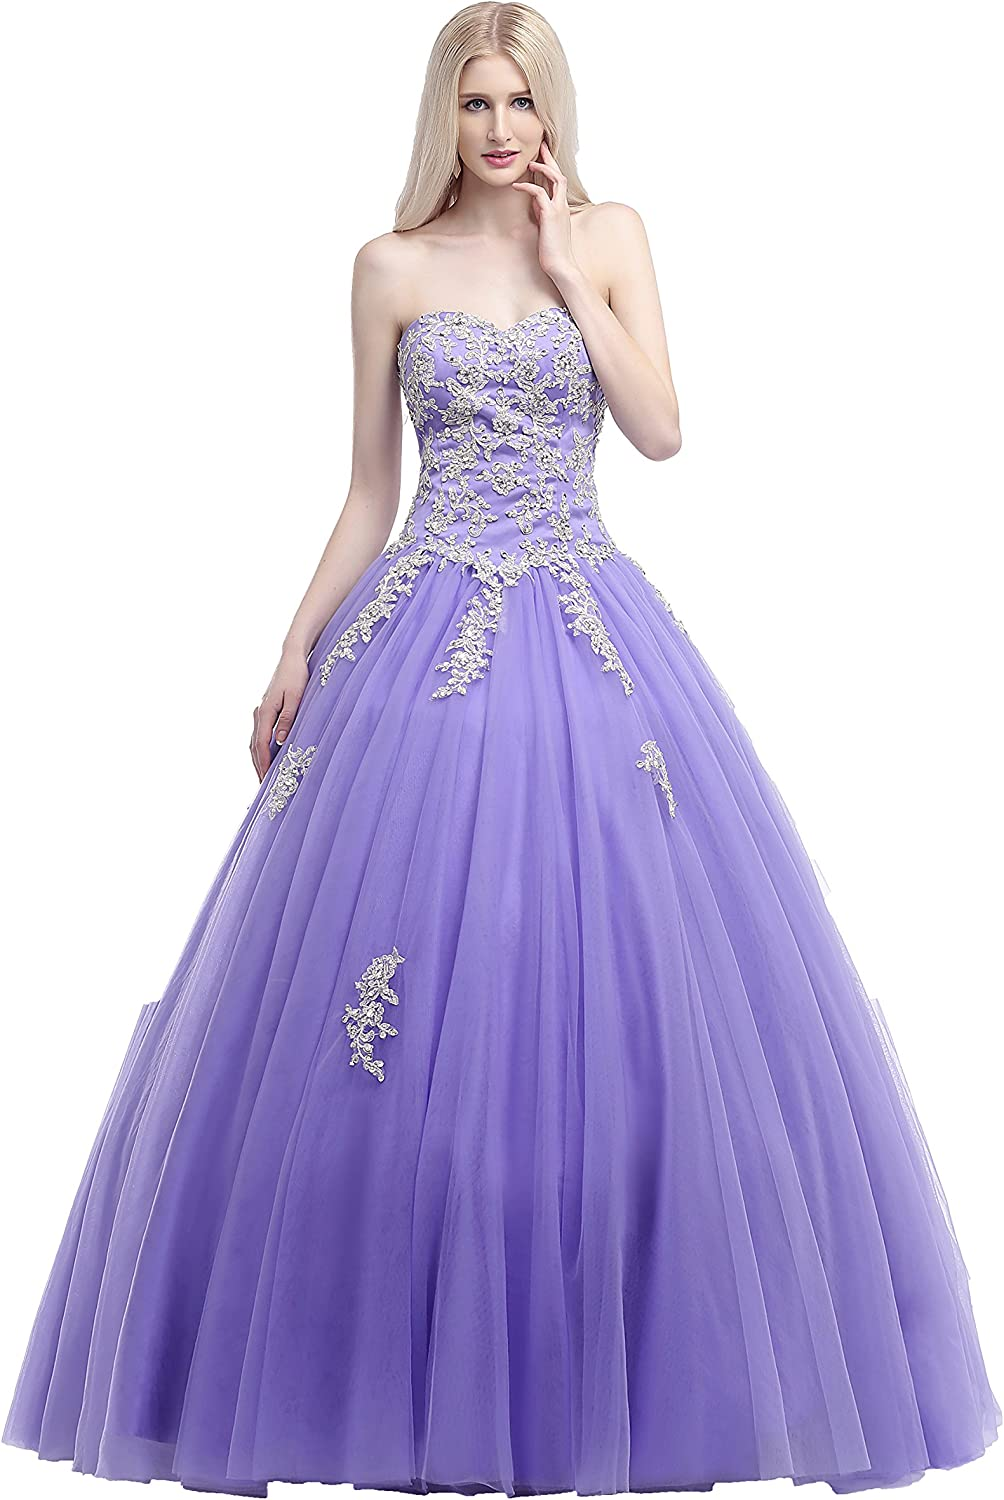 Anna's Bridal Women's Sweetheart Appliques Prom Dresses Ball Gown Quinceanera Dress